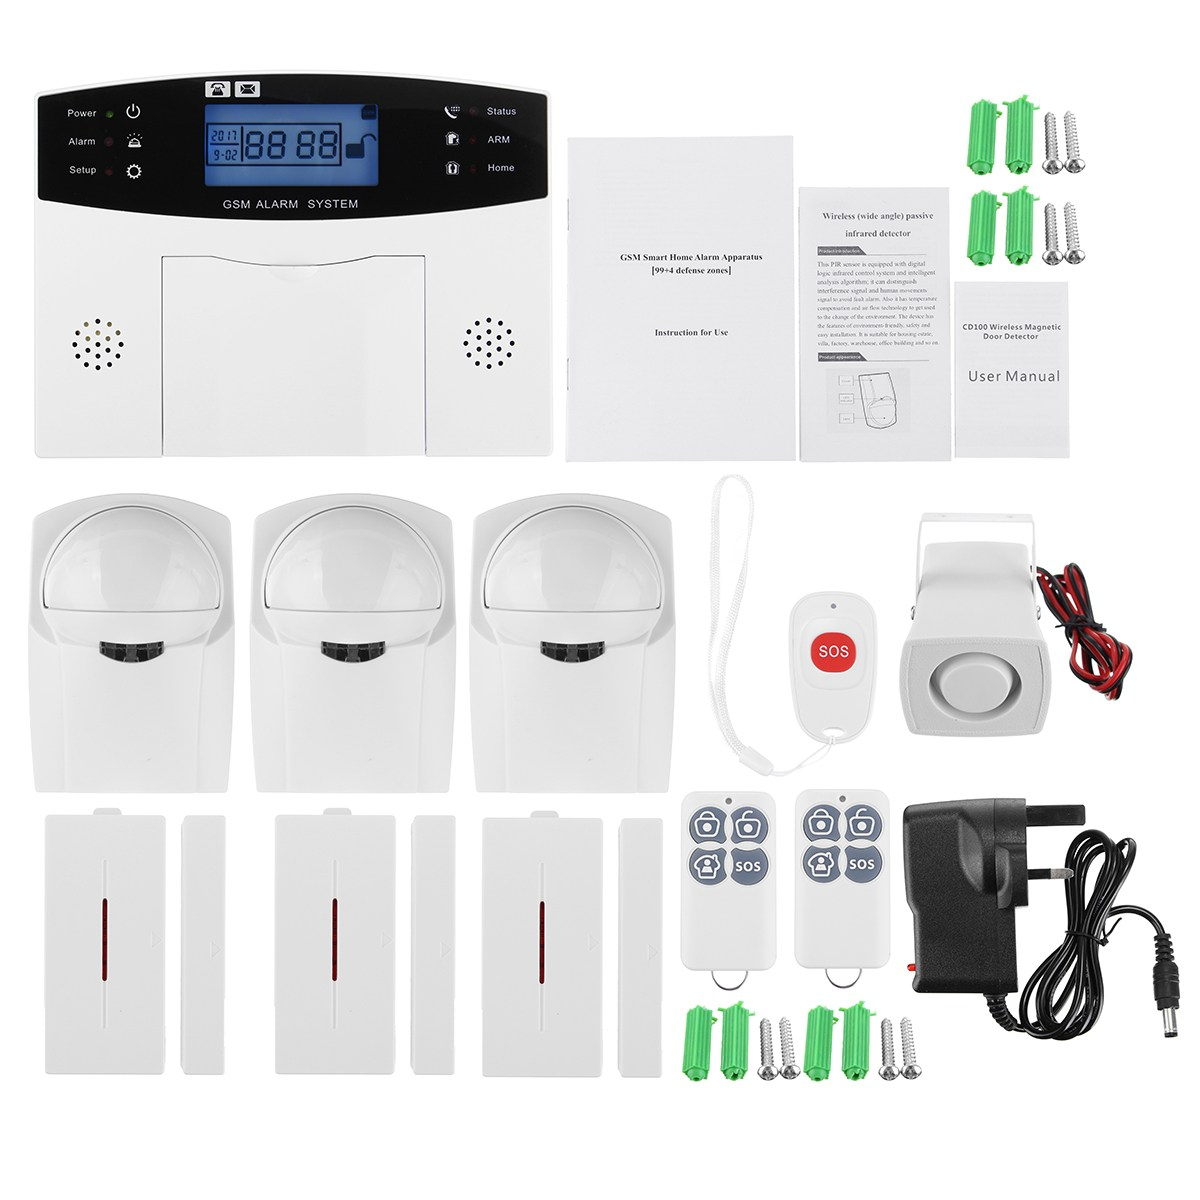 NEW LCD Wireless GSM Home Burglar Alarm System Motion / Door Window Sensor Home Security Safety